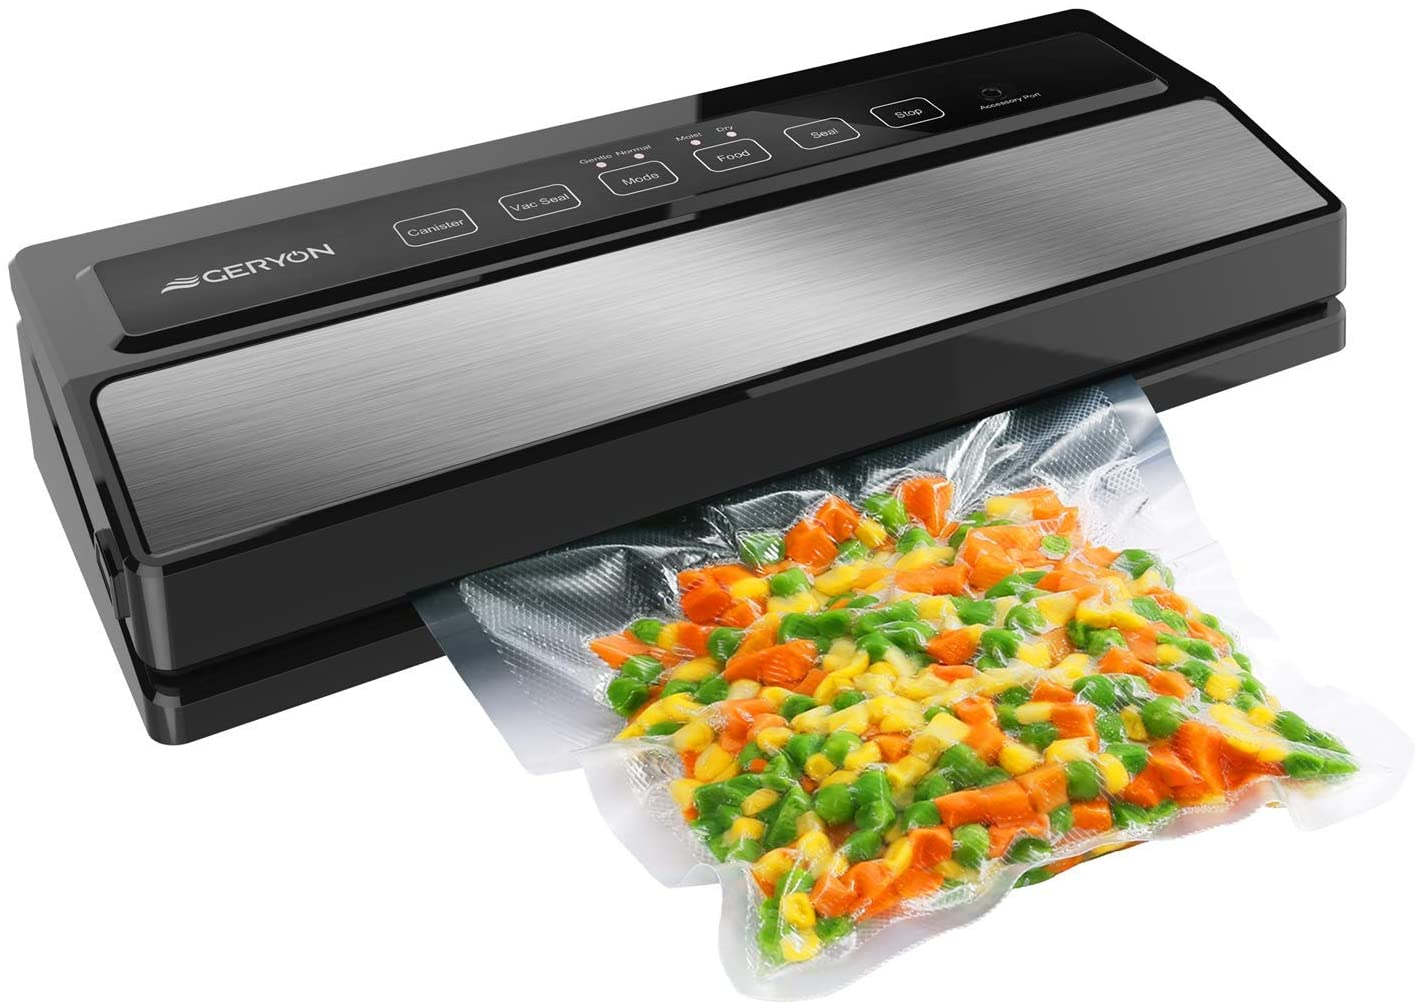 GERYON Vacuum Sealer Machine, Automatic Food Sealer for Food Savers w Starter Kit Led Indicator Lights Easy to Clean Dry Moist Food Modes Compact Design Silver Renewed